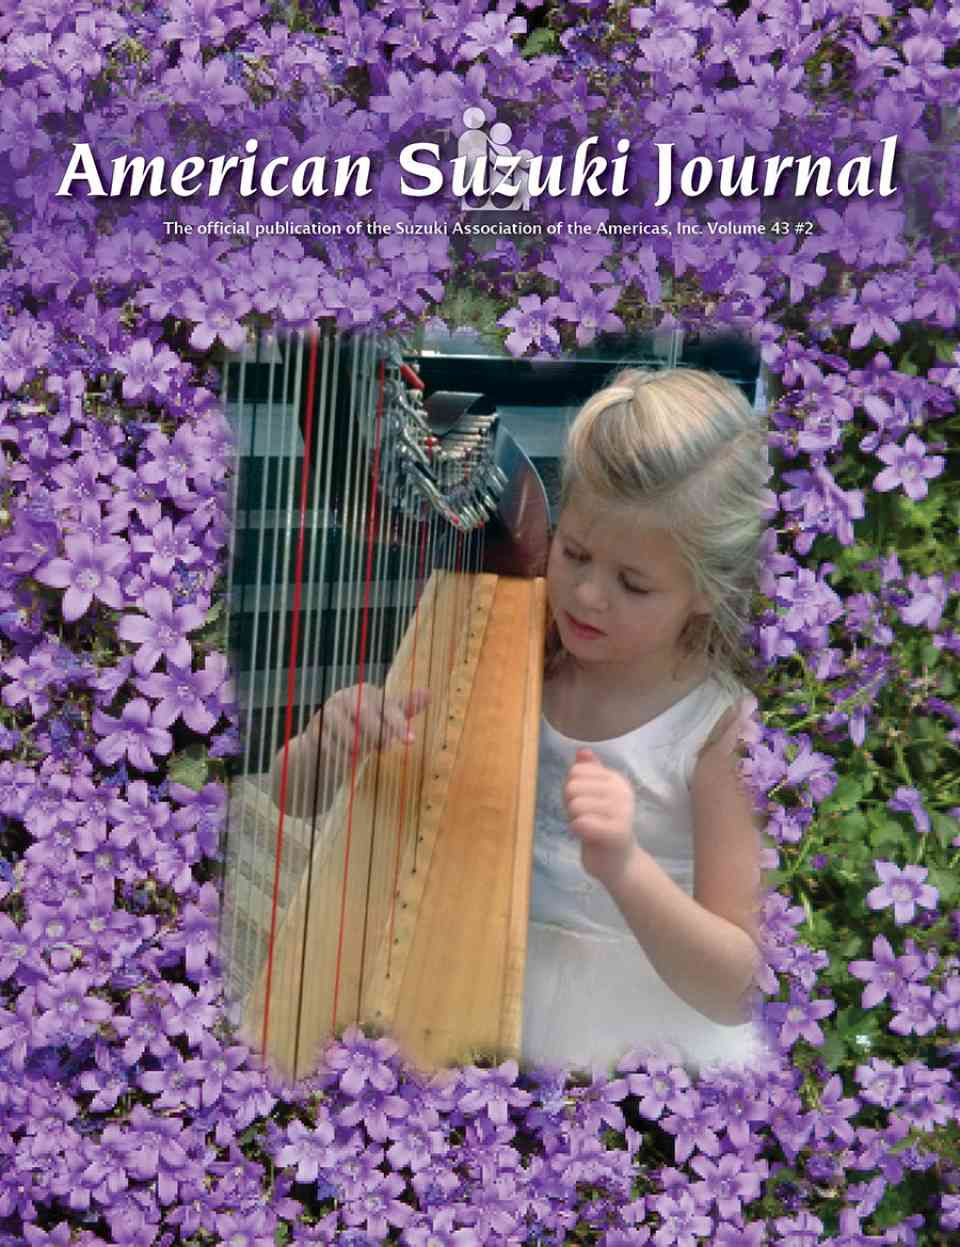 American Suzuki Journal 43.2